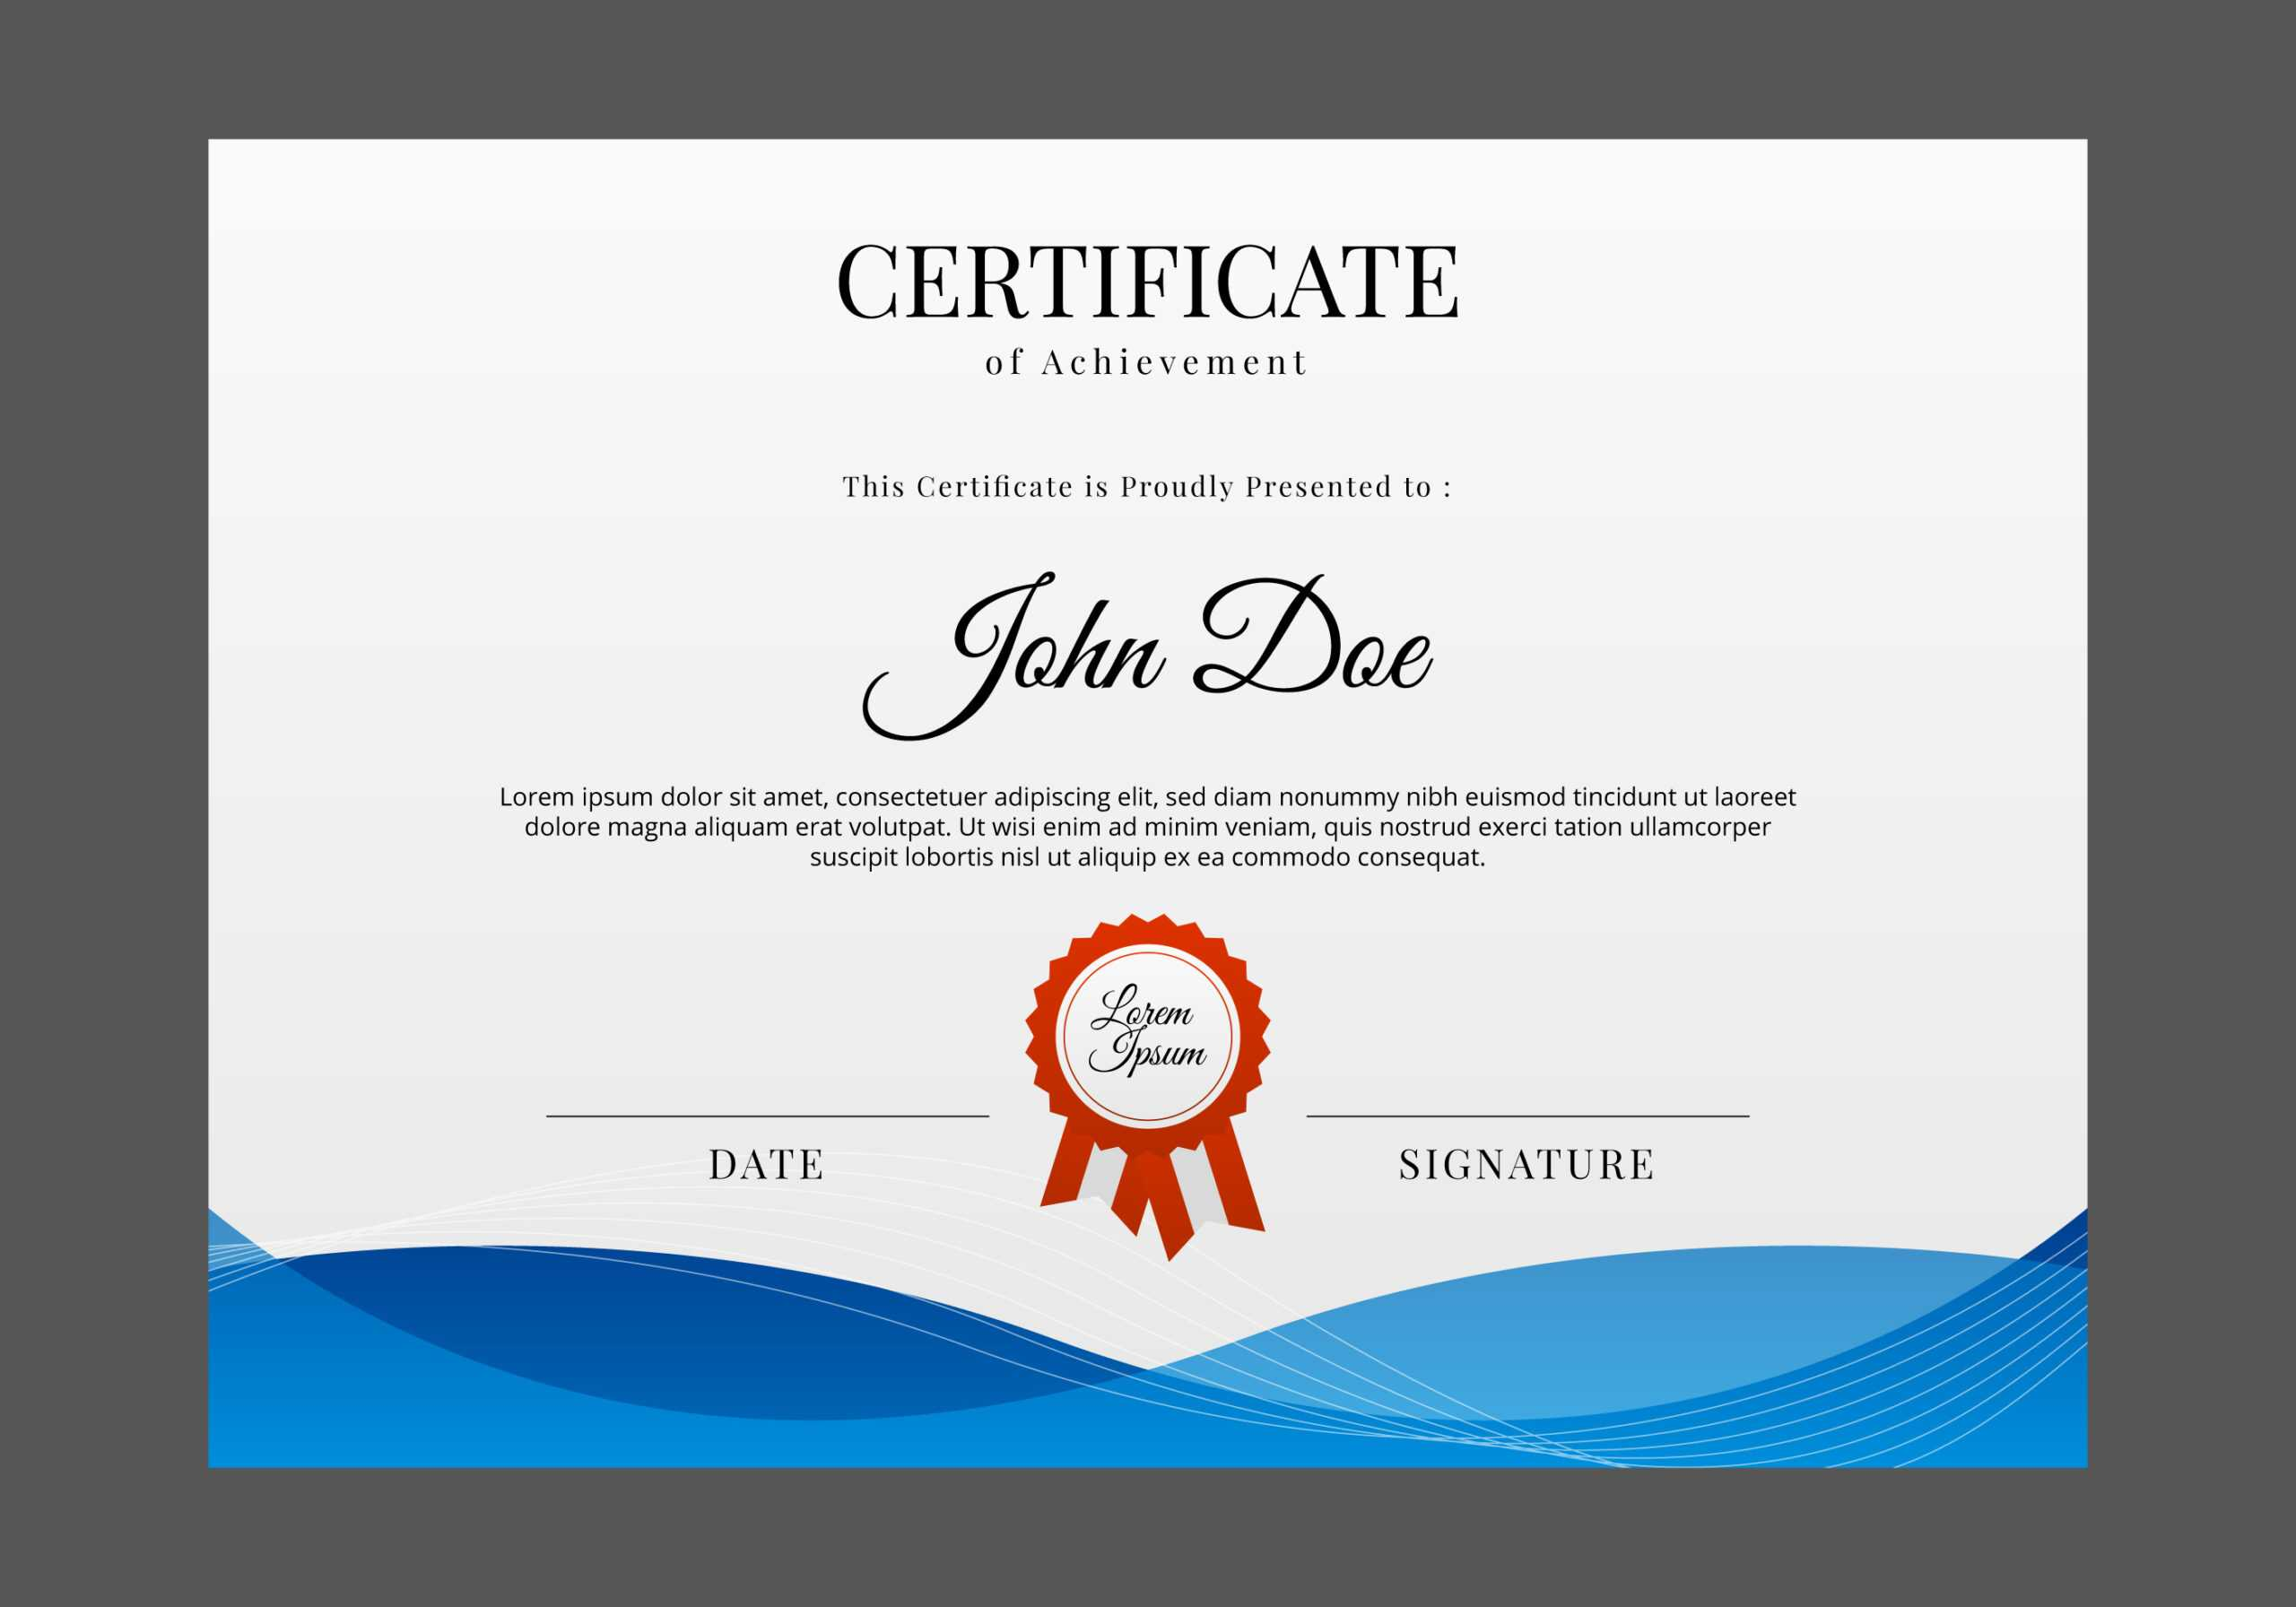 Certificate Templates, Free Certificate Designs With Regard To Professional Certificate Templates For Word